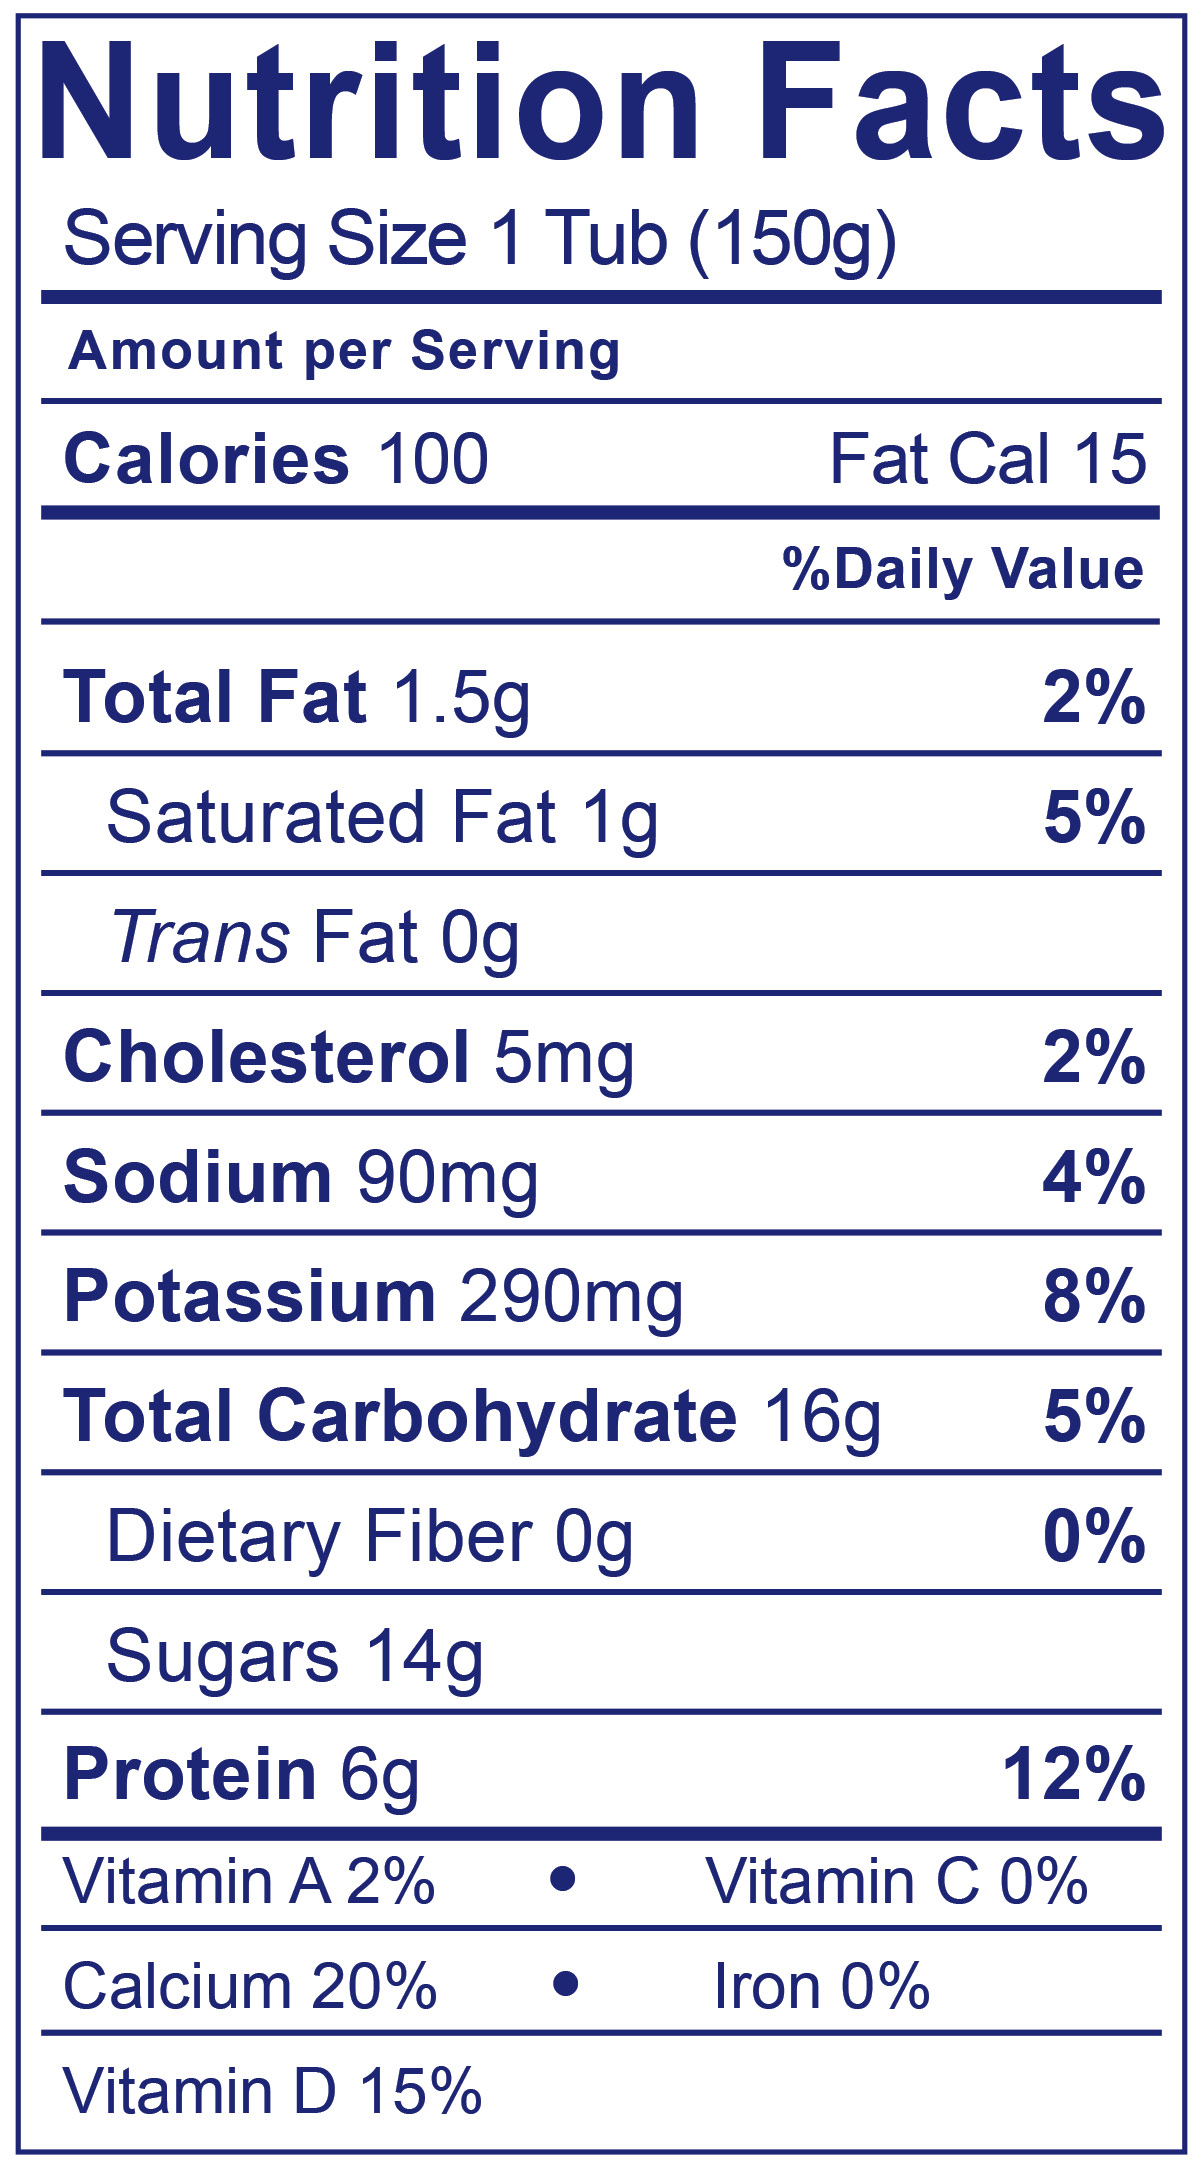 Smooth & Creamy  Lowfat Strawberry - Nutrition Facts